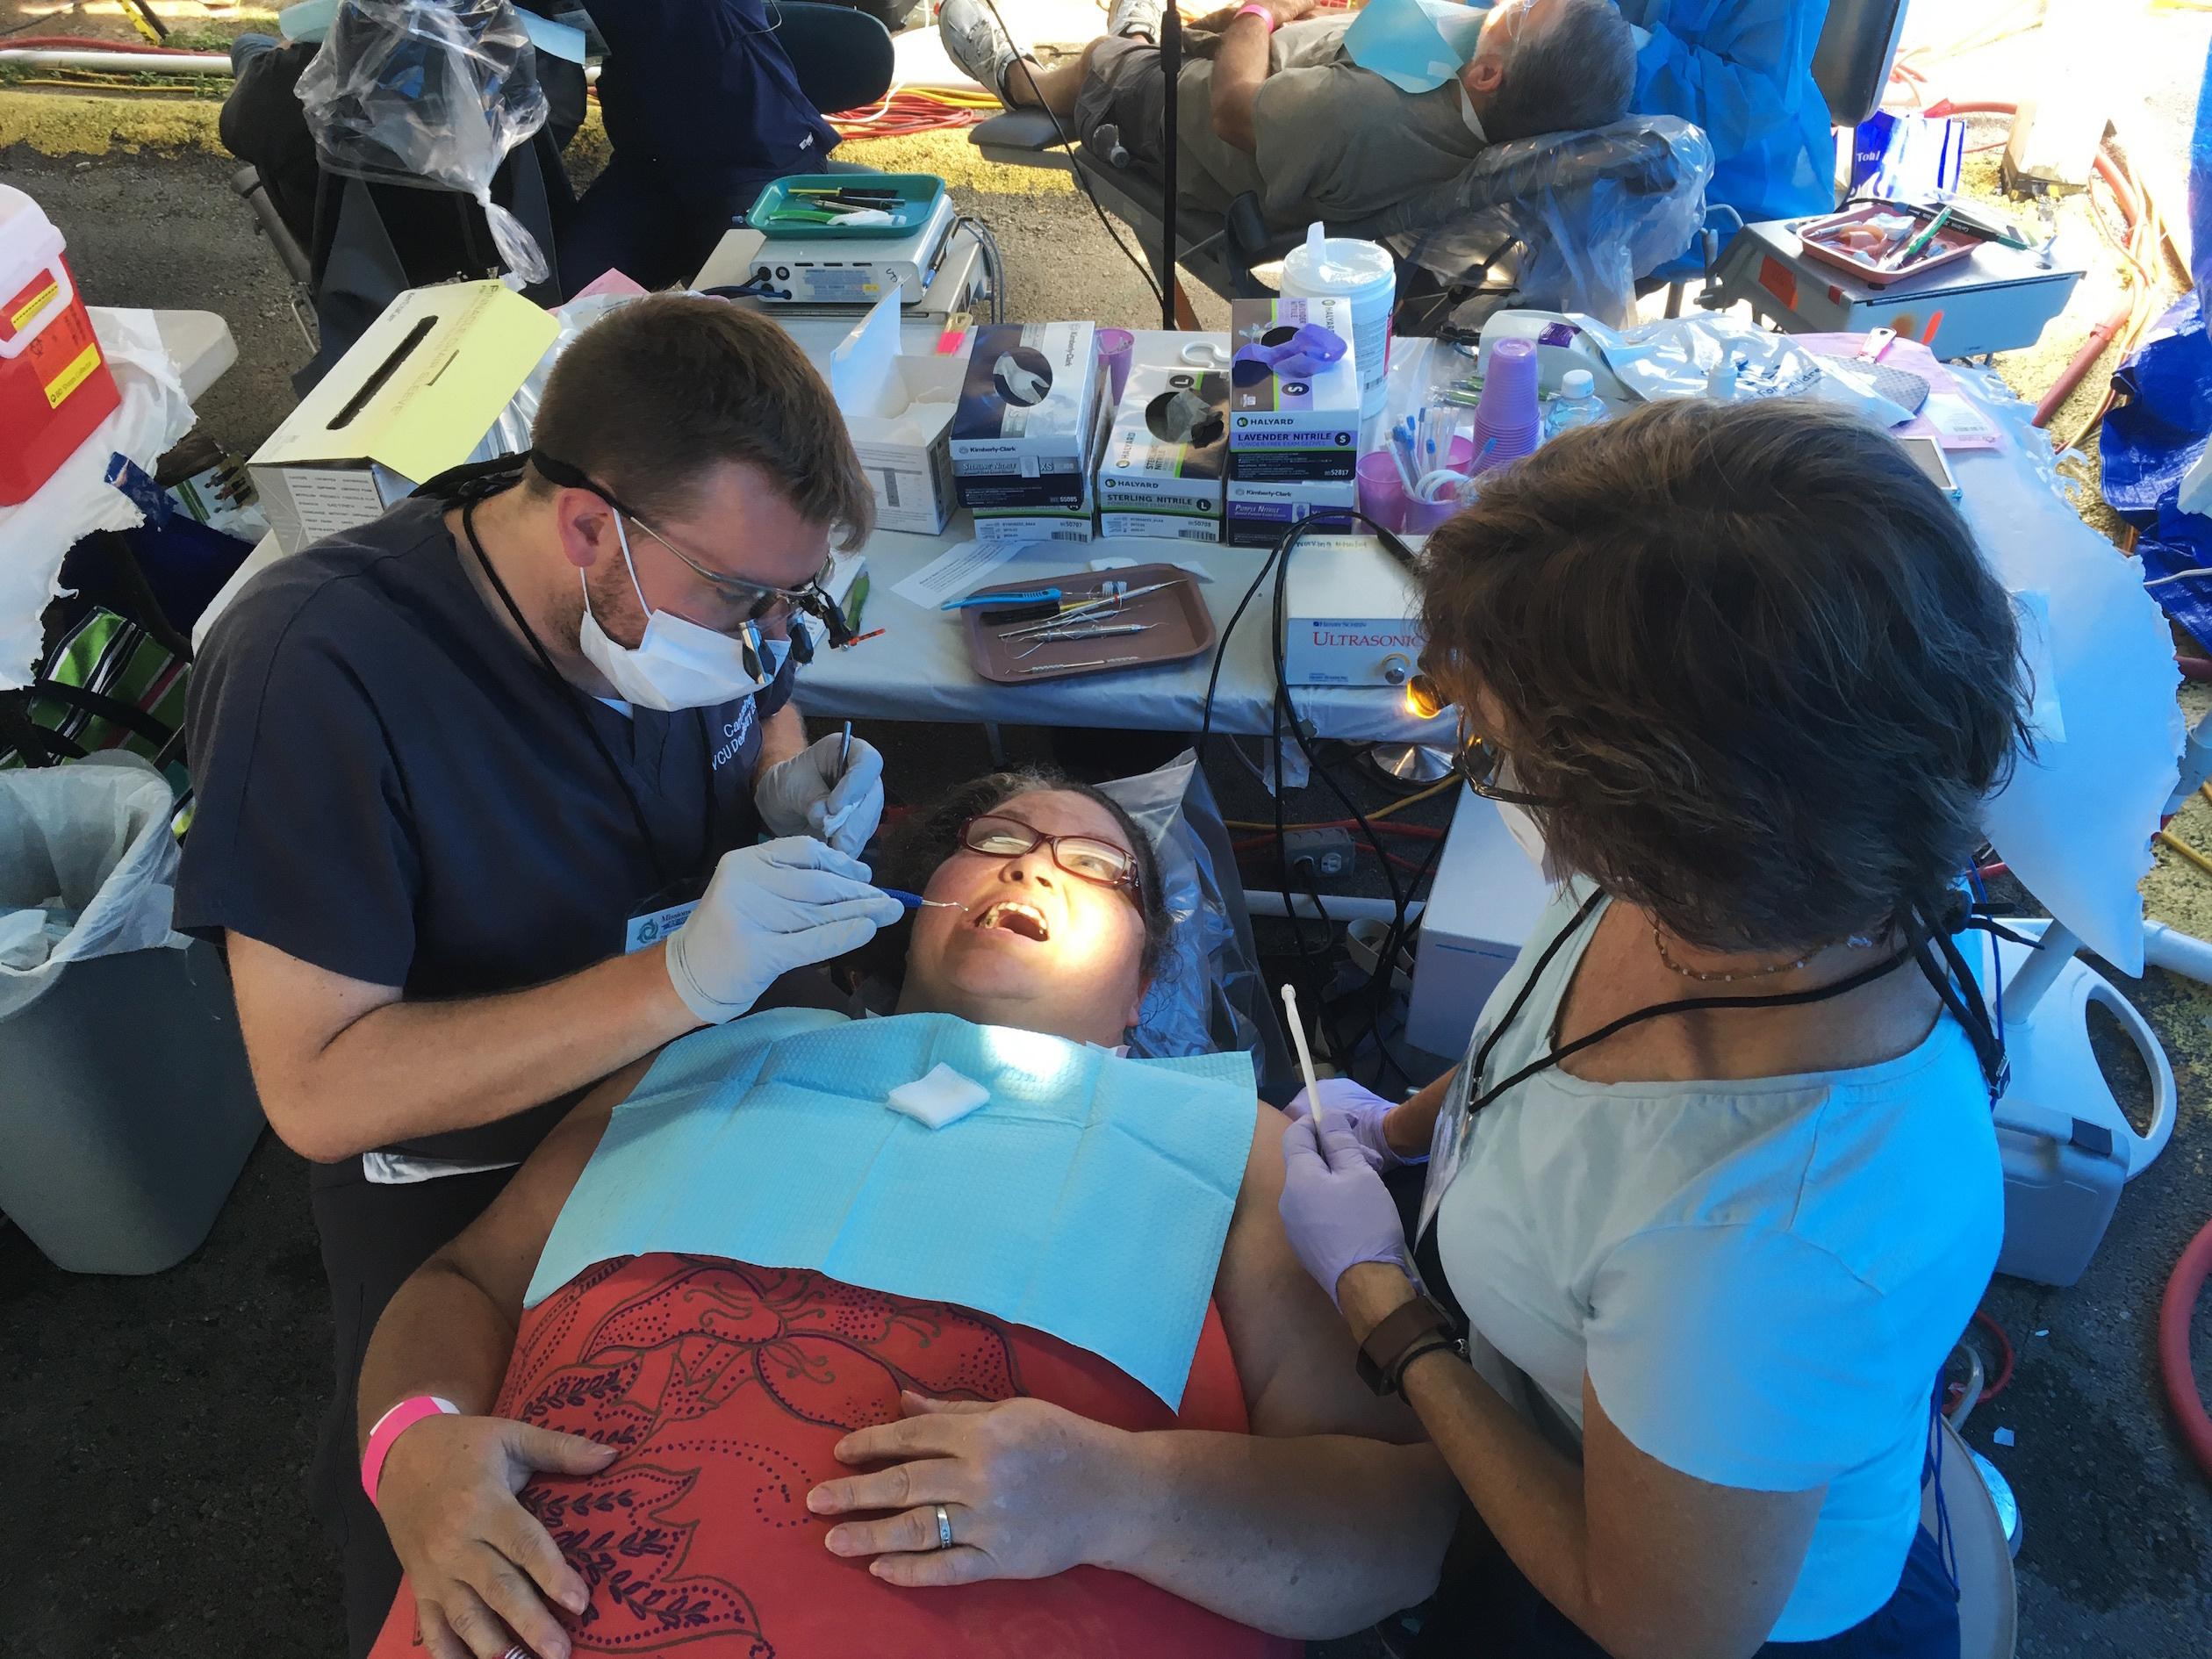 In this Friday, July 21, 2017 photo, dental student Carl Leiner, left, checks Lisa Kantsos teeth at the Remote Area Medical clinic in Wise, Va. Kantsos and hundreds of other uninsured patients came to the rural clinic for free dental and medical care. (AP Photo/Dylan Lovan)